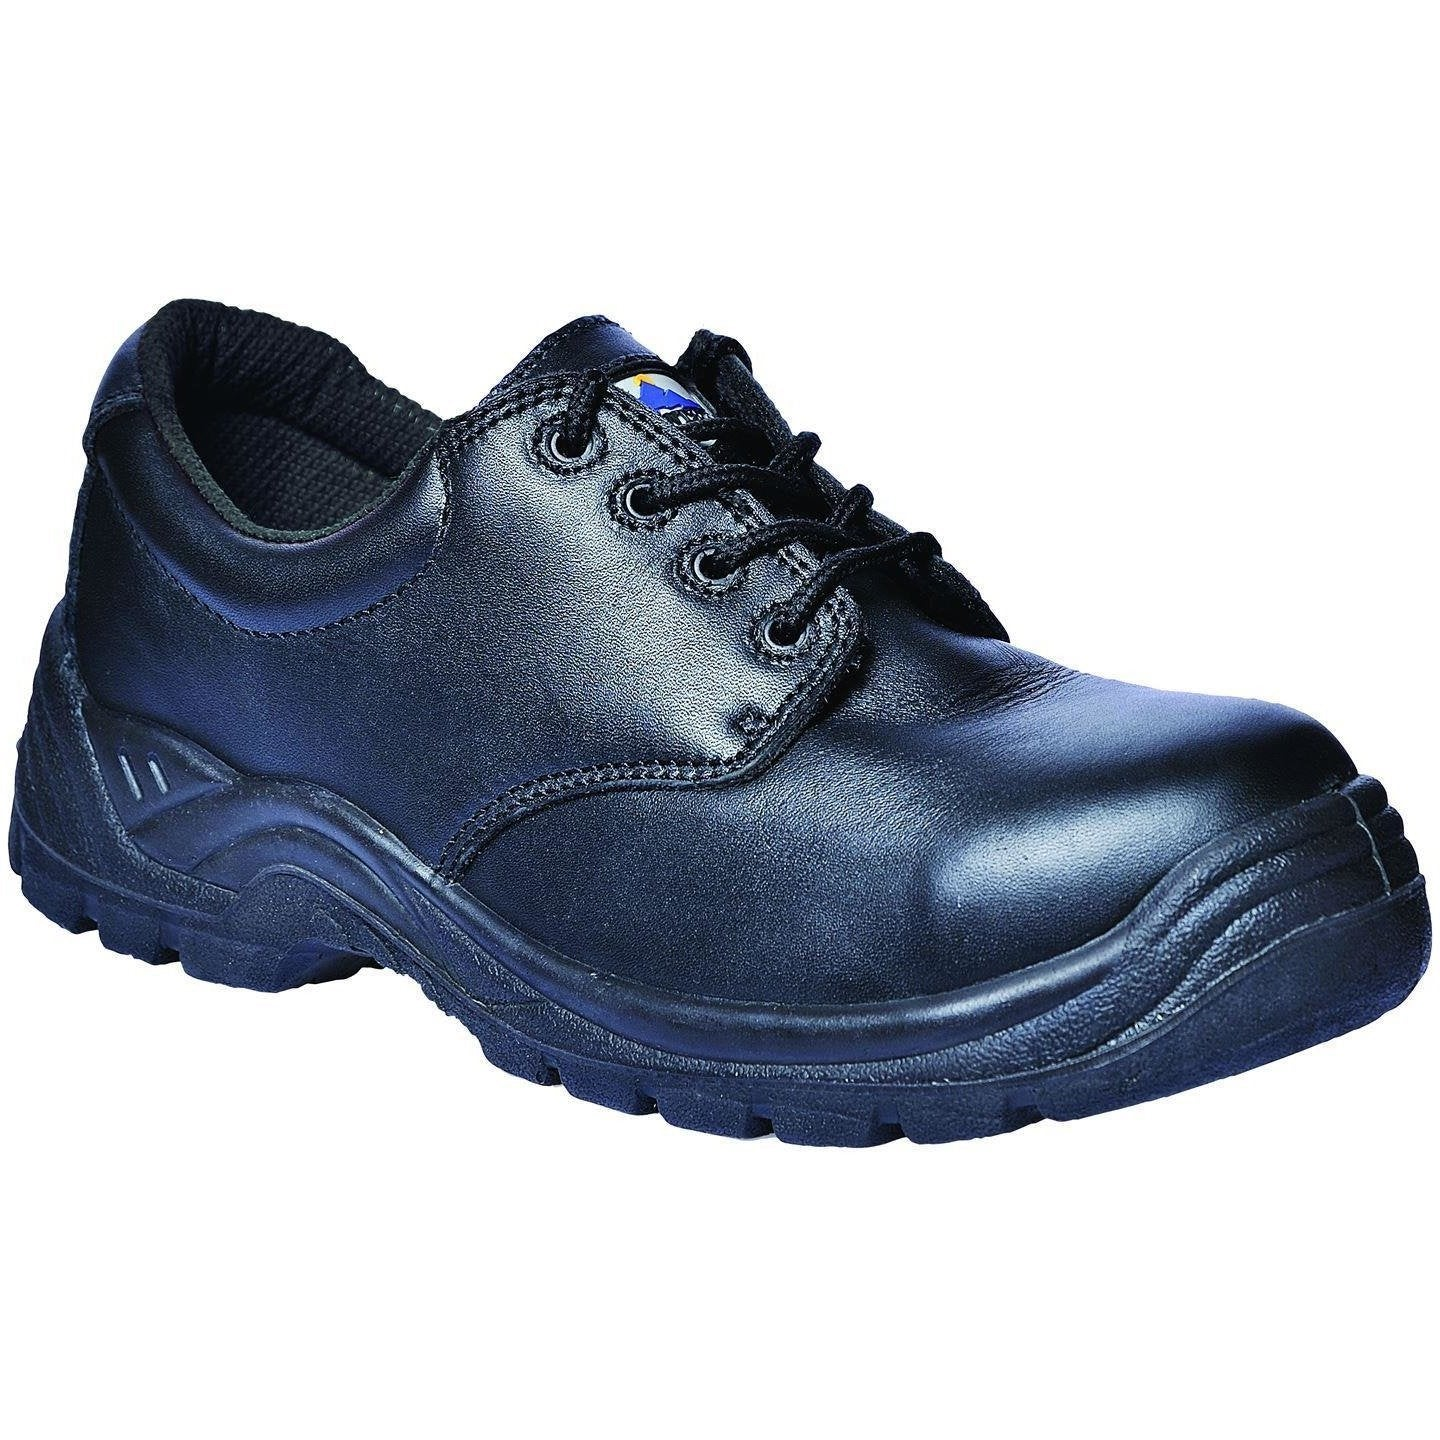 Portwest Compositelite Thor Shoe S3 FC44 - reid outdoors